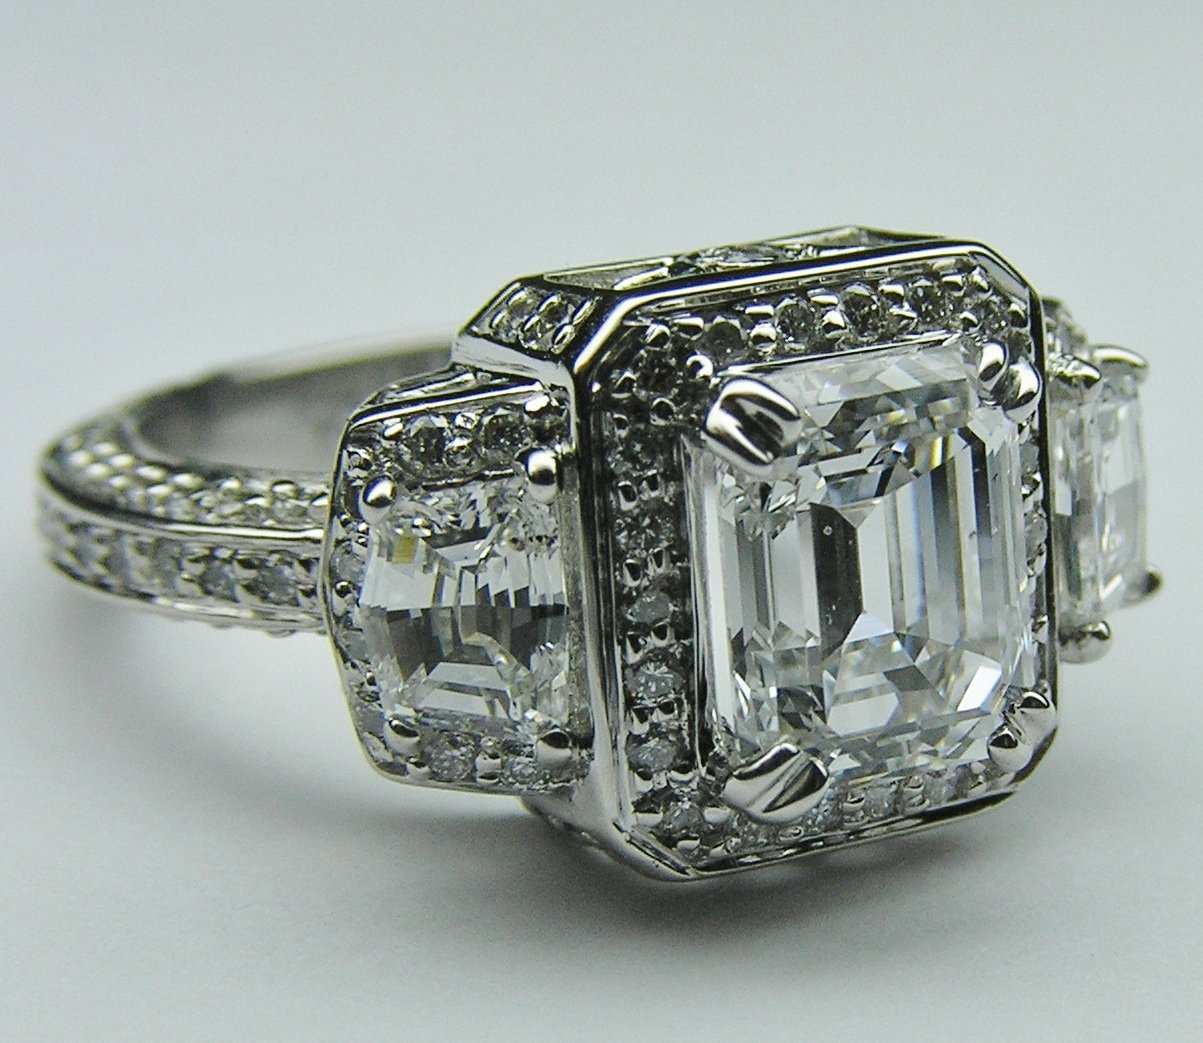 The Great Antique Emerald Cut Diamond Engagement Rings Ring Review